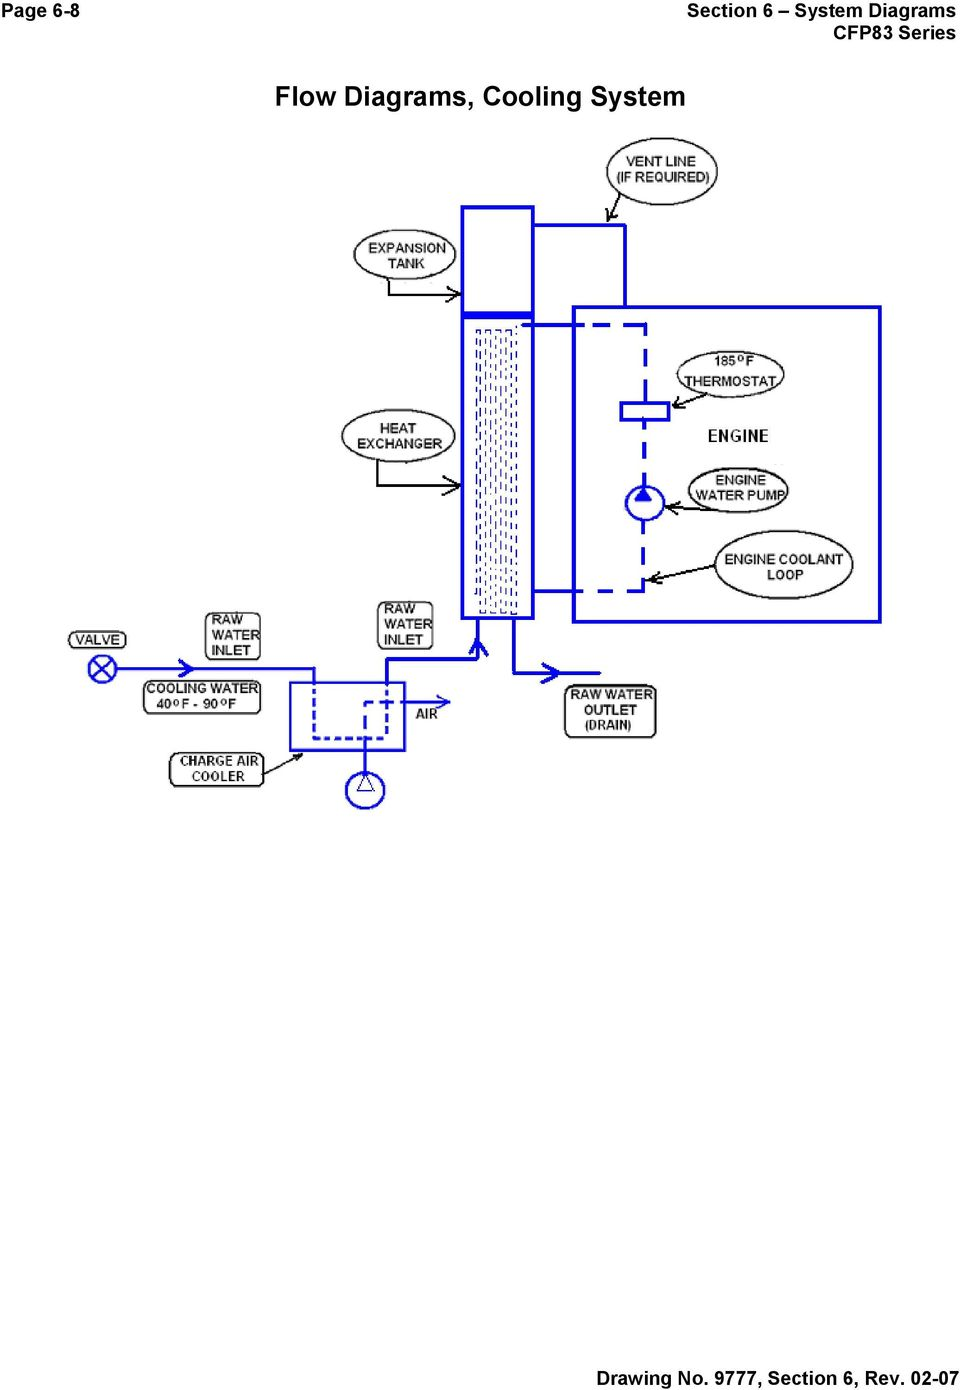 Section 6 System Diagrams Pdf Engine Flow Diagram 9 Page Cooling Cont 1 Cylinder Bloc 5 Coolant Past Oil Cooler 2 Inlet